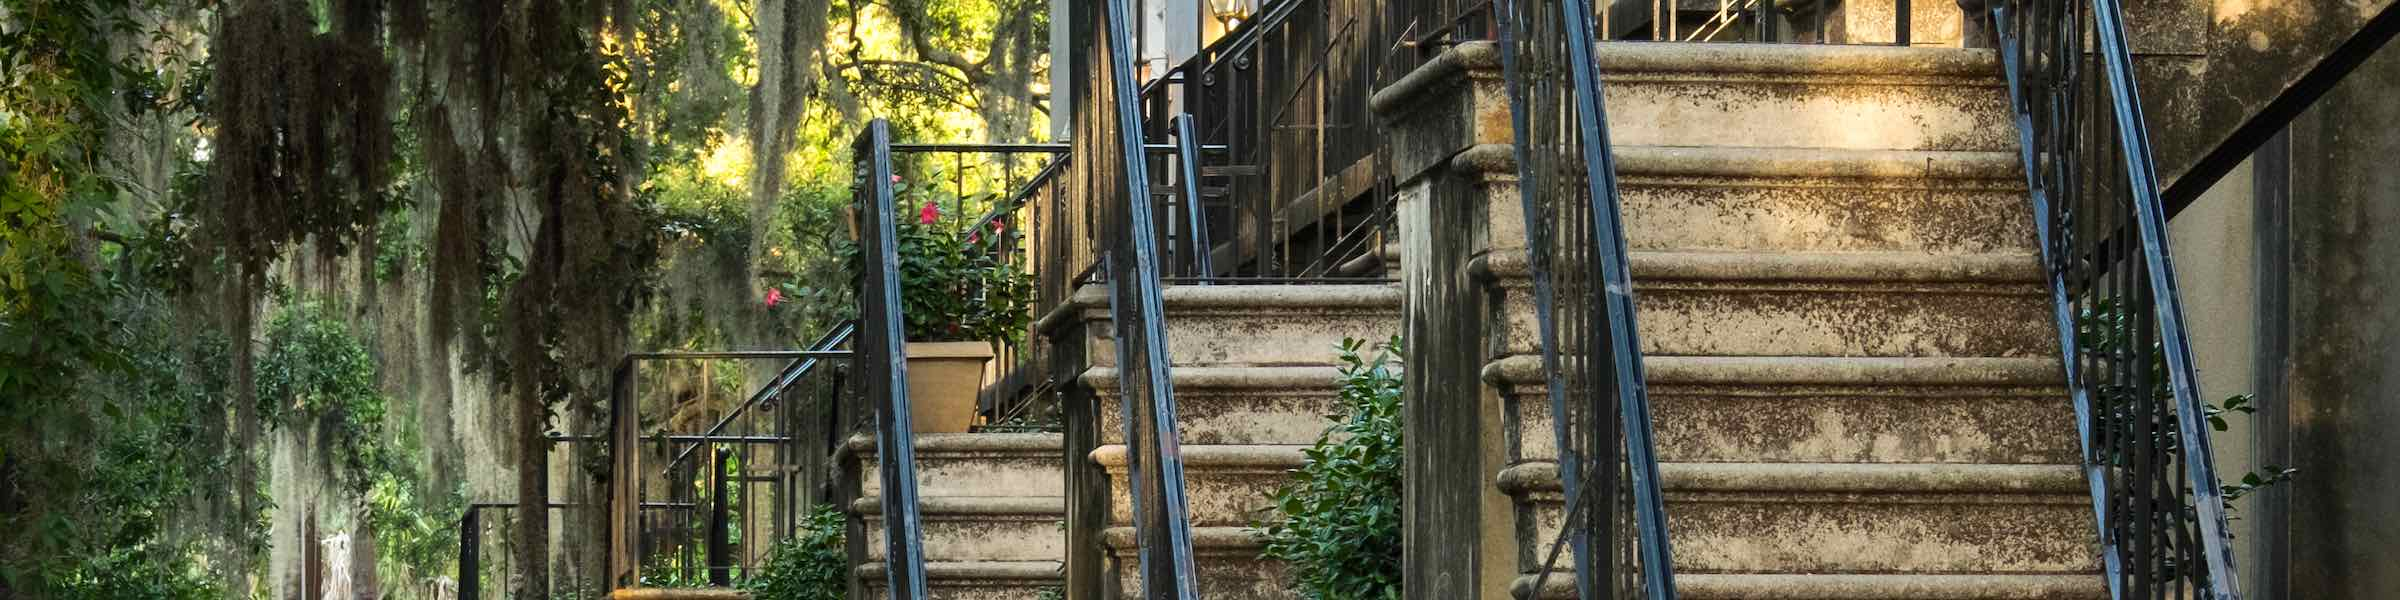 Steep stairs enter historic row houses in Savannah, GA.